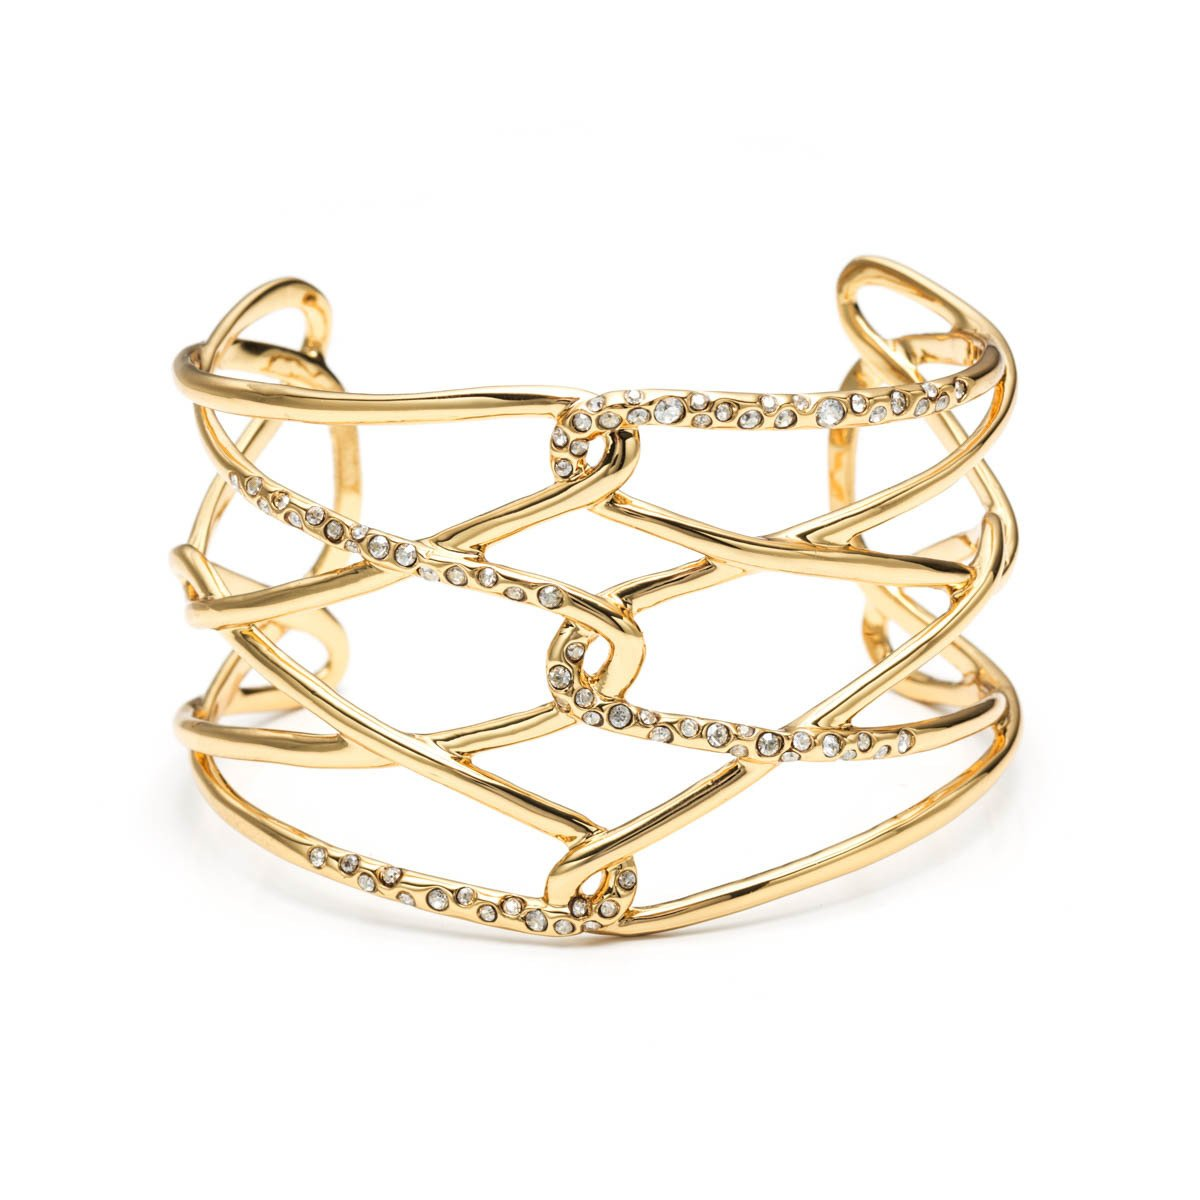 Liquid Gold Barbed Cuff